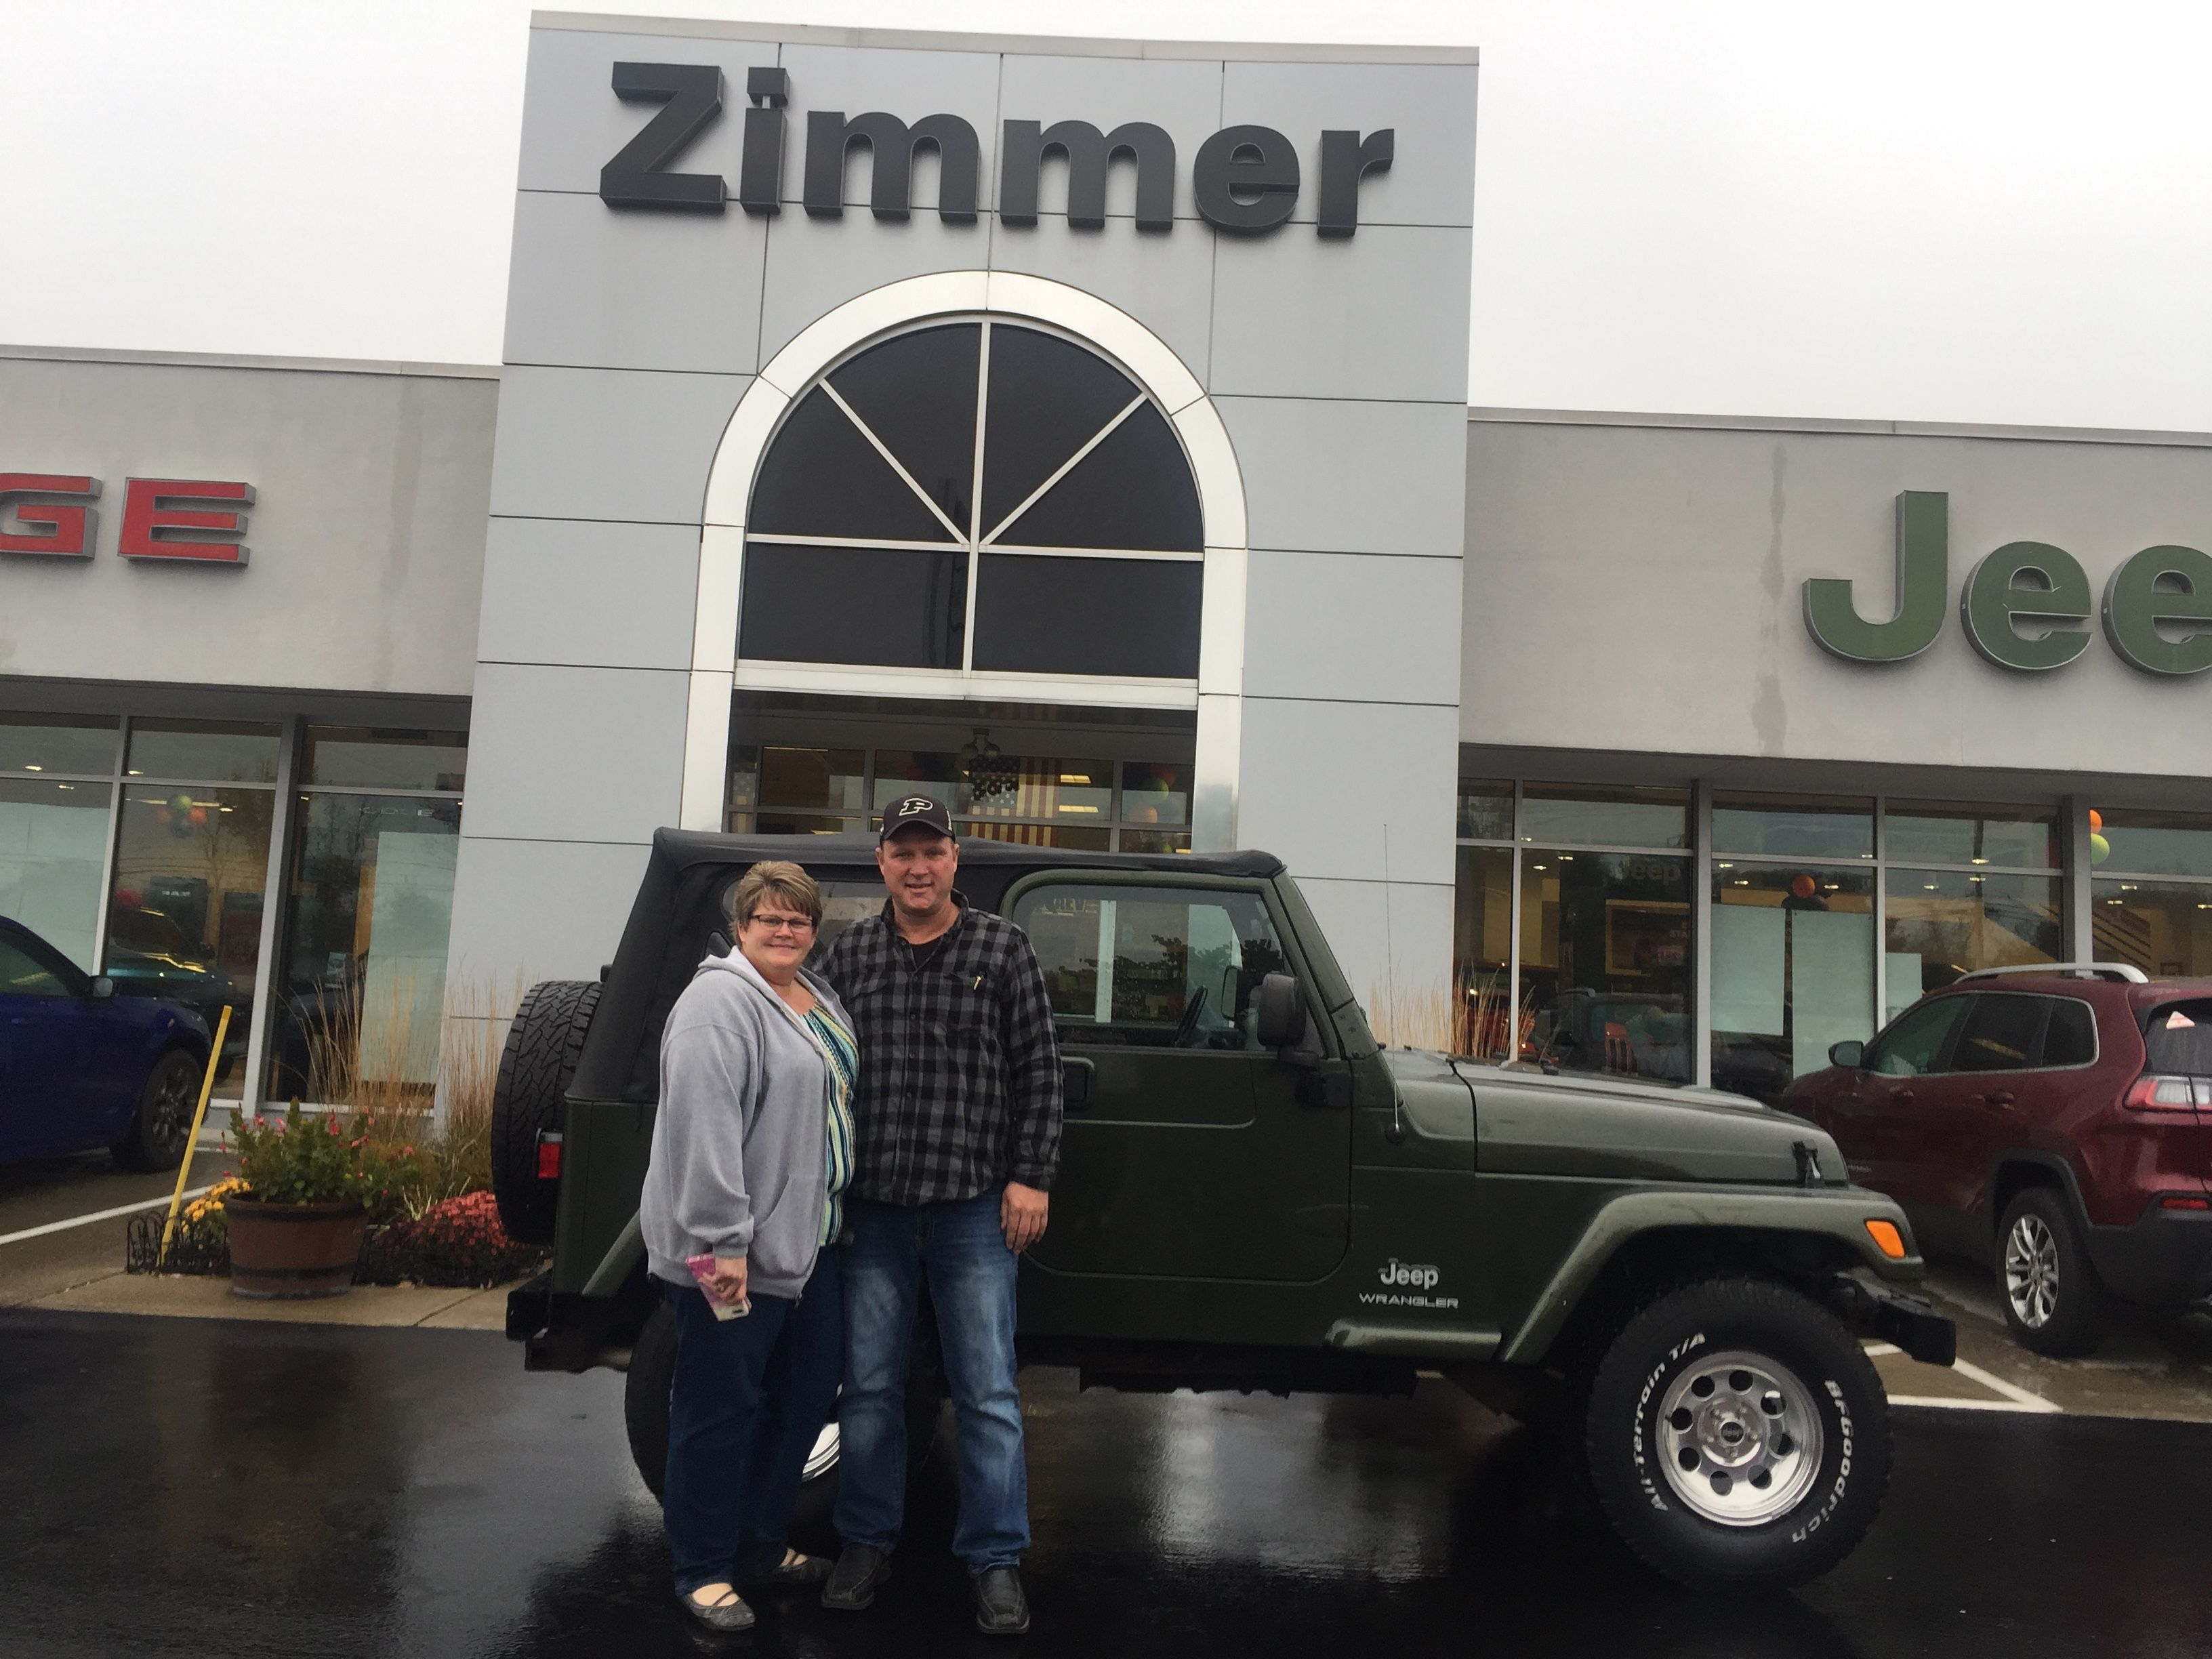 The Kempfers Were Looking For An Older Jeep Wrangler And Drove A Few Hours Away To Buy This 2006 Wrangle With Images Jeep Wrangler X 2006 Jeep Wrangler Chrysler Dodge Jeep